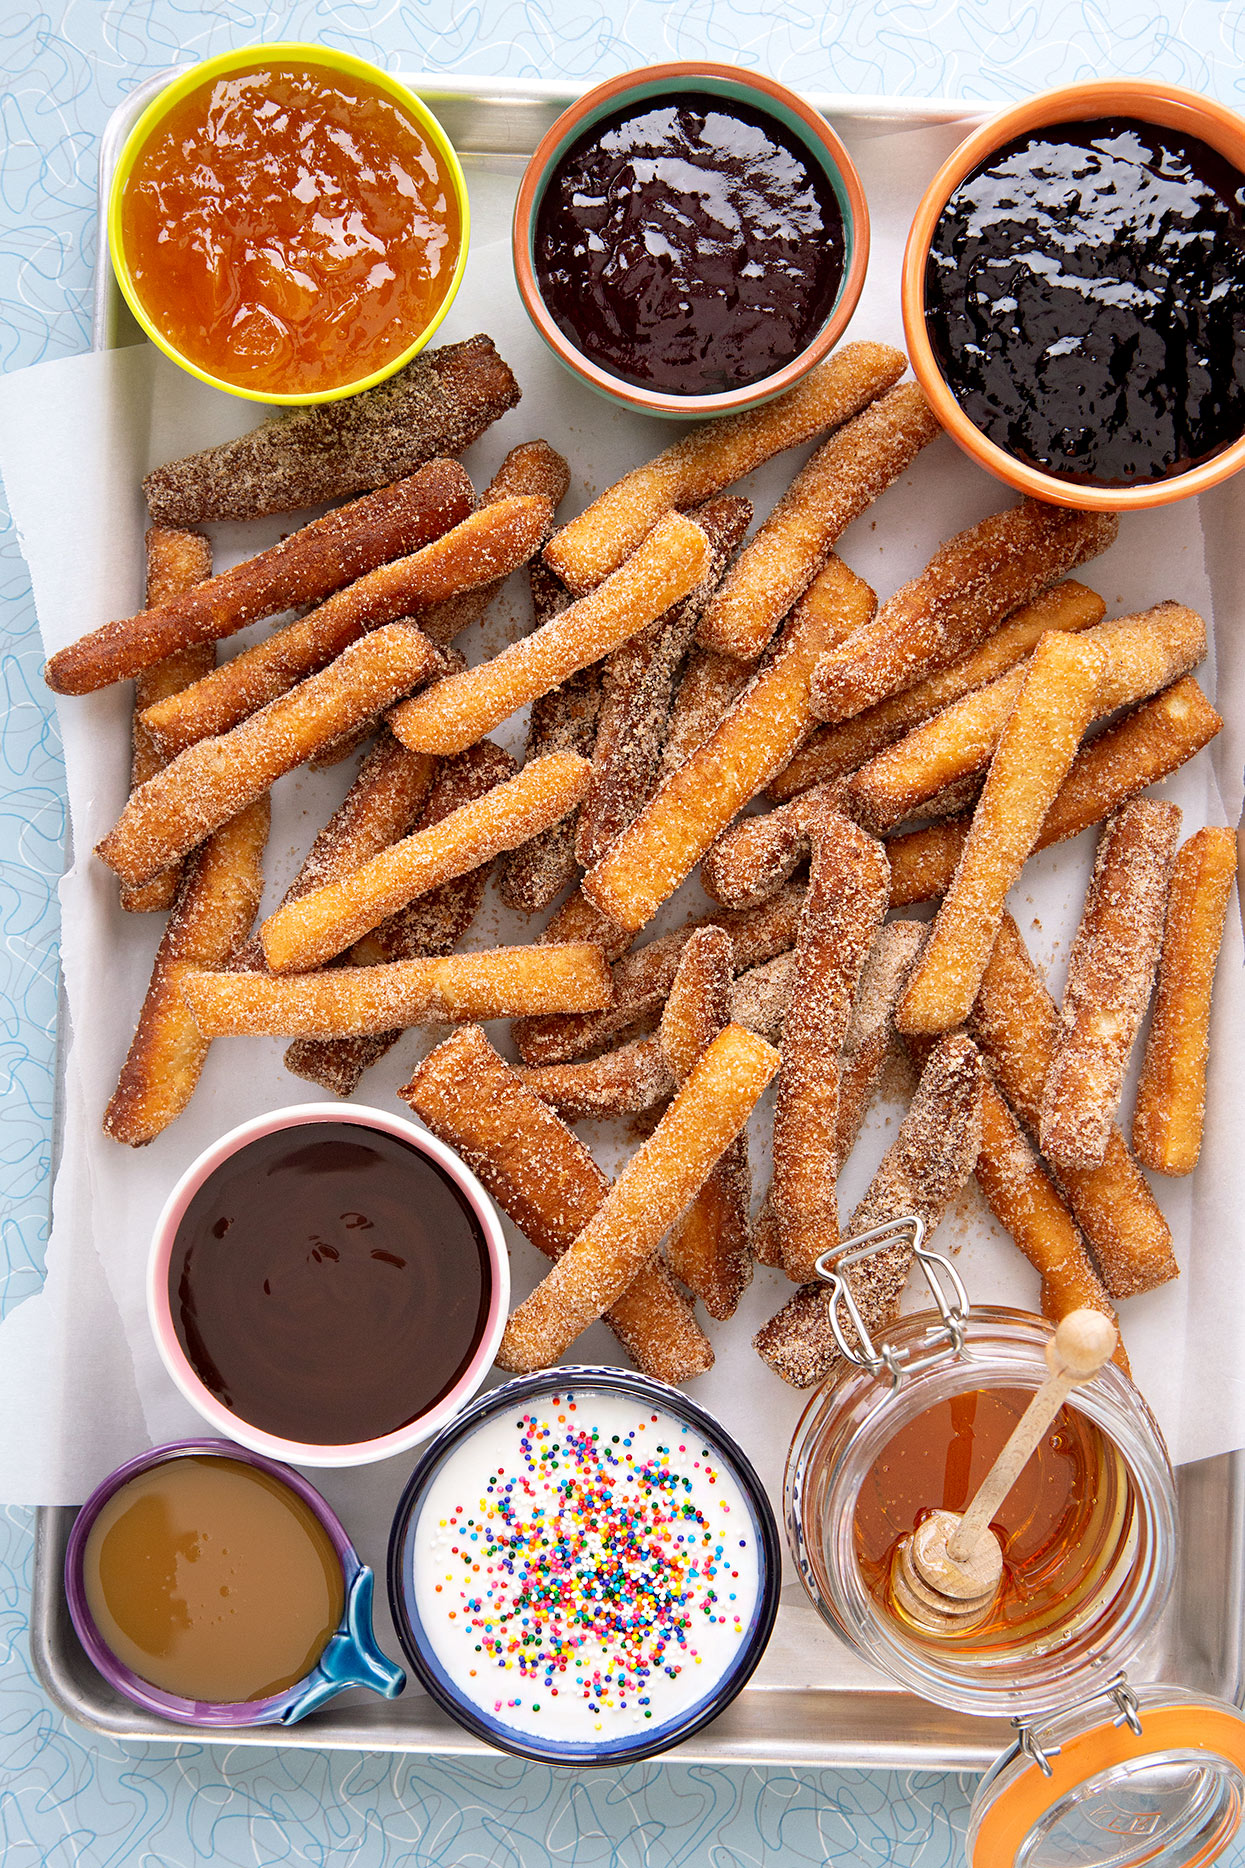 DIY Donut Fries